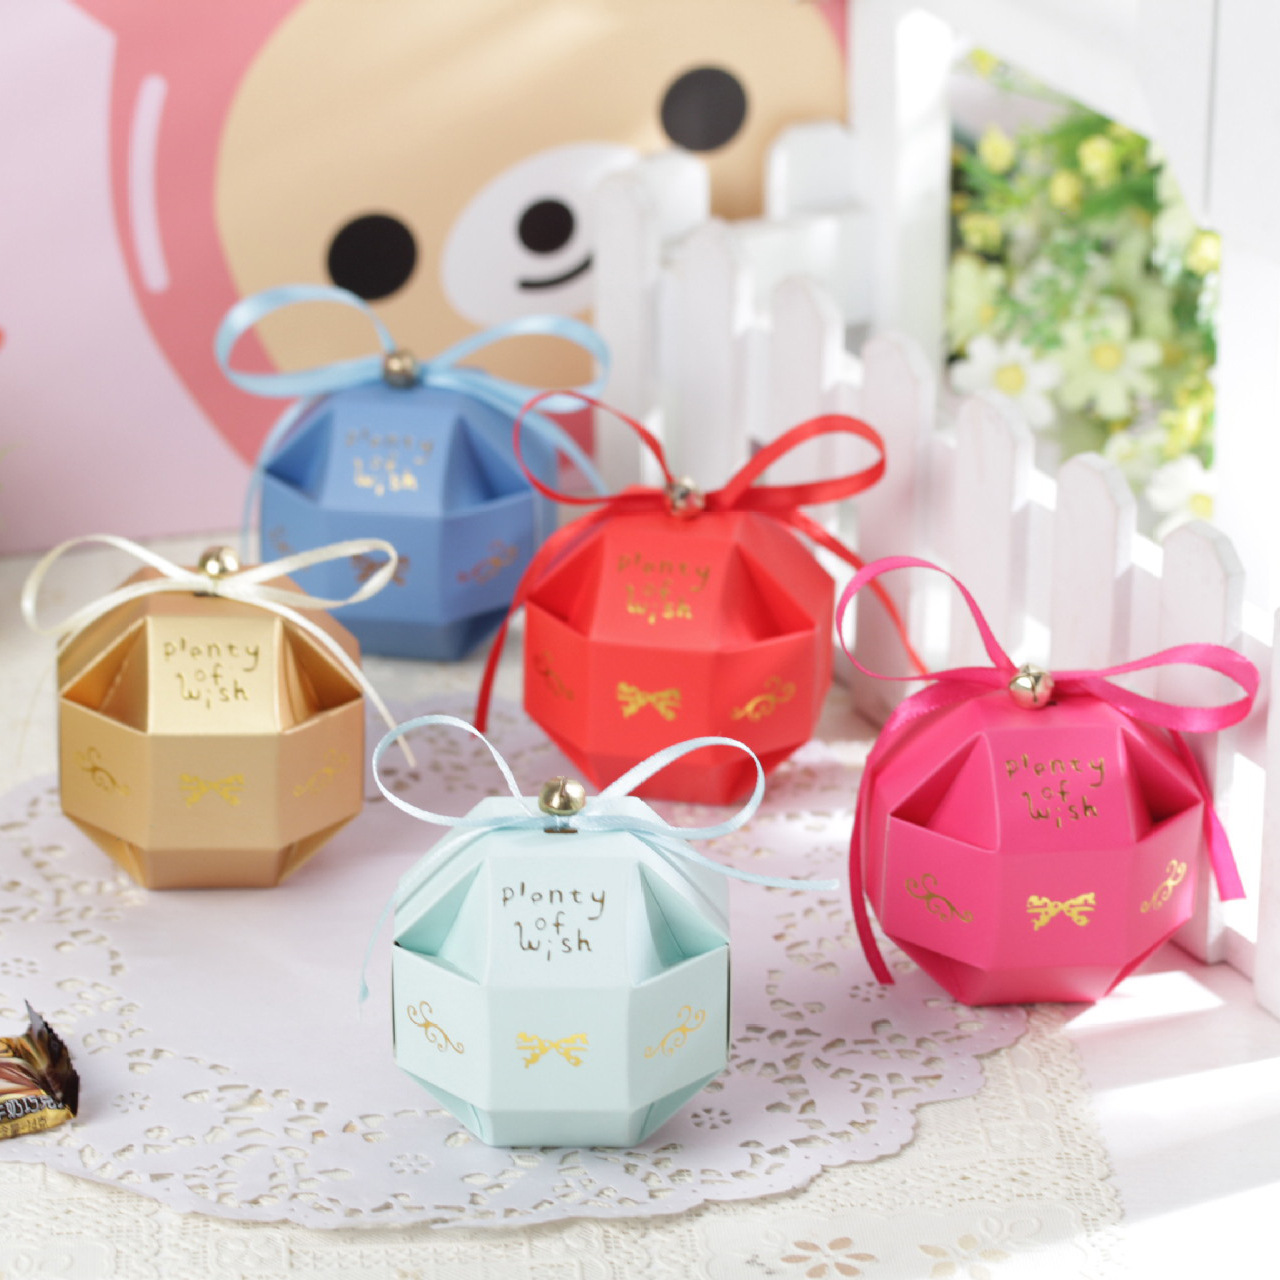 Awesome New Large Size Packaging Wedding Candy Boxes Gift Cake Boxtaobao Food General Factory Wholesale Gift Bags Wrappingsupplies From New Large Size Packaging Wedding Candy Boxes Gift Cake gifts Creative Gift Packaging